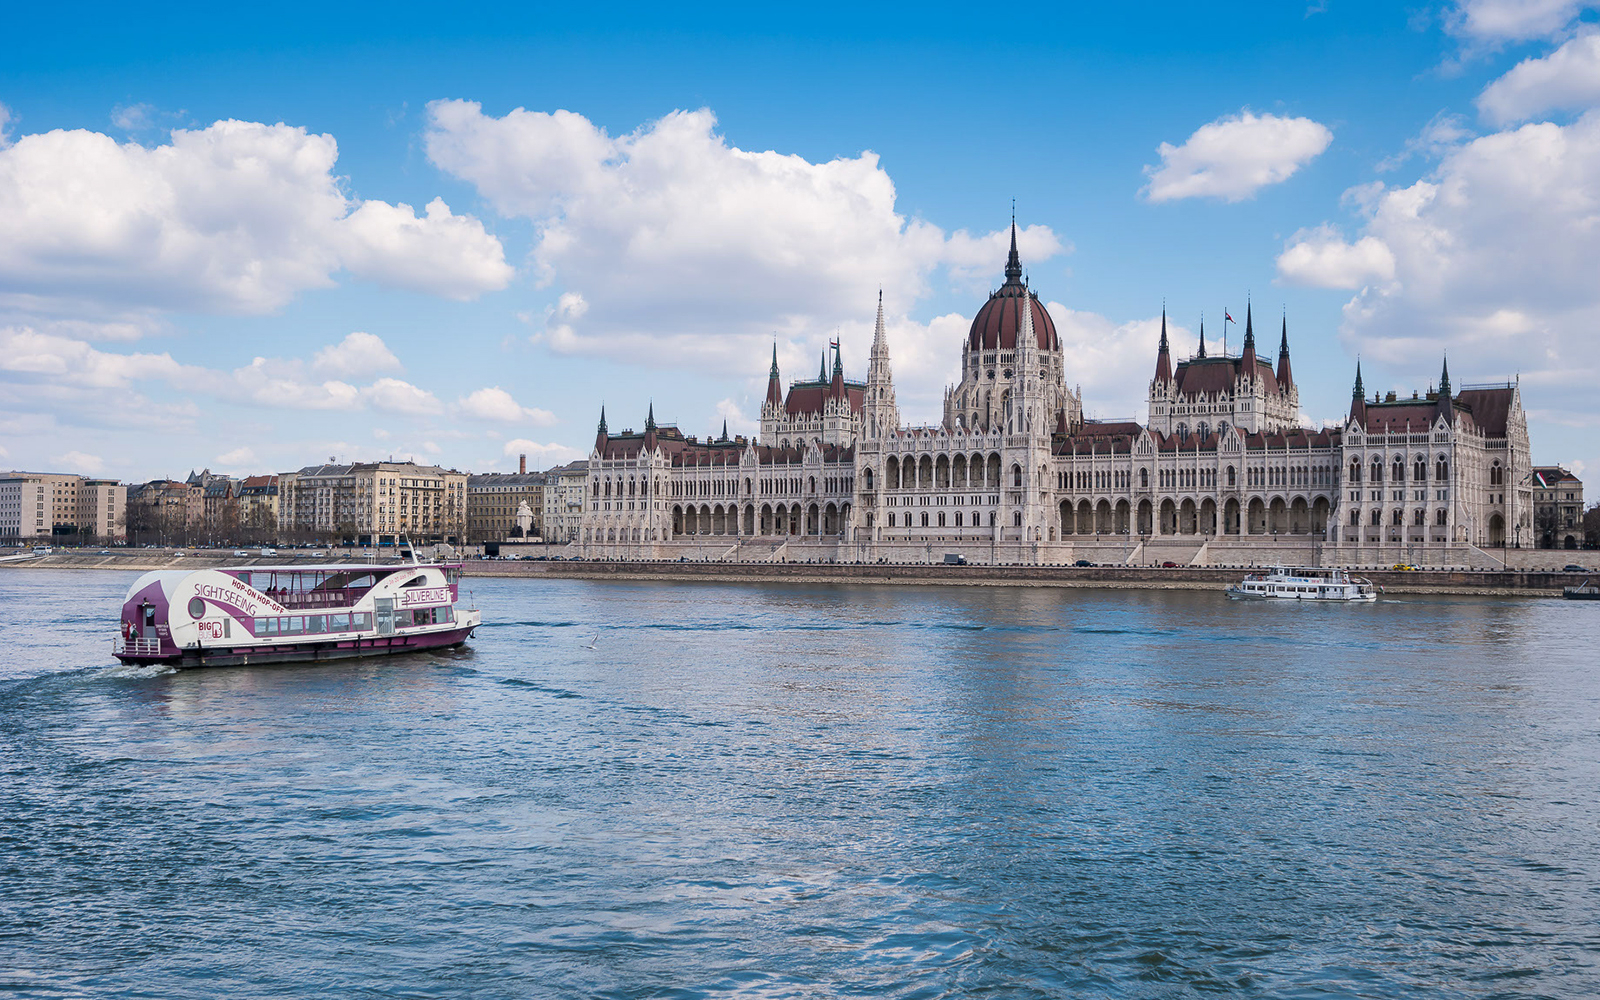 7a62fc56 2aa6 404b 9cb7 06dd6906114e 8772 budapest sightseeing cruise 75 minutes 02